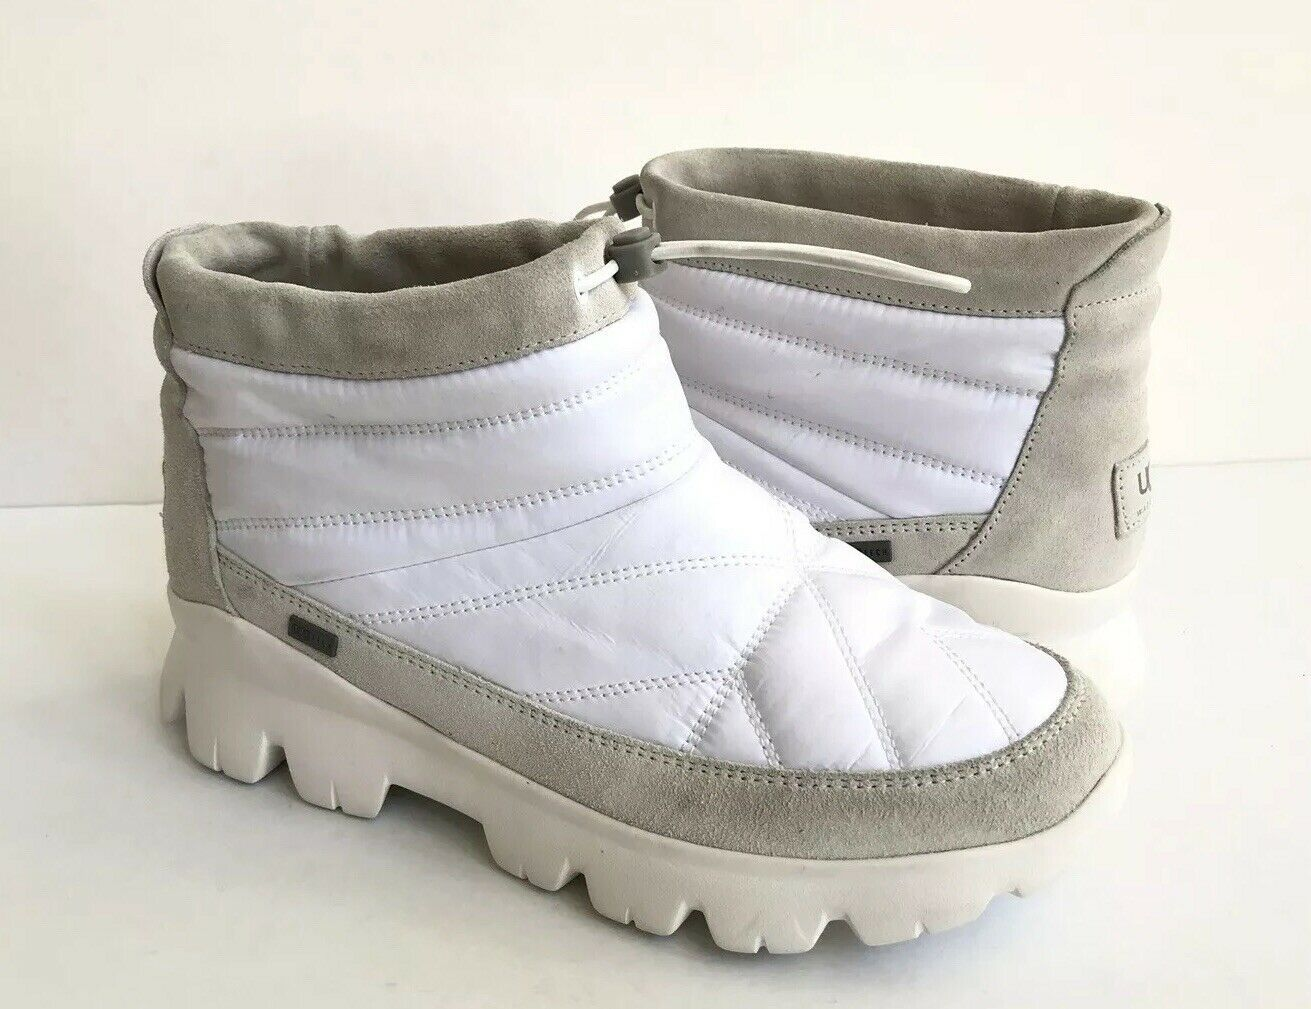 UGG CENTARA WHITE WATERPROOF ANKLE QUILTED SNEAKER SHOE US 6.5 / EU 37.5 /UK 4.5